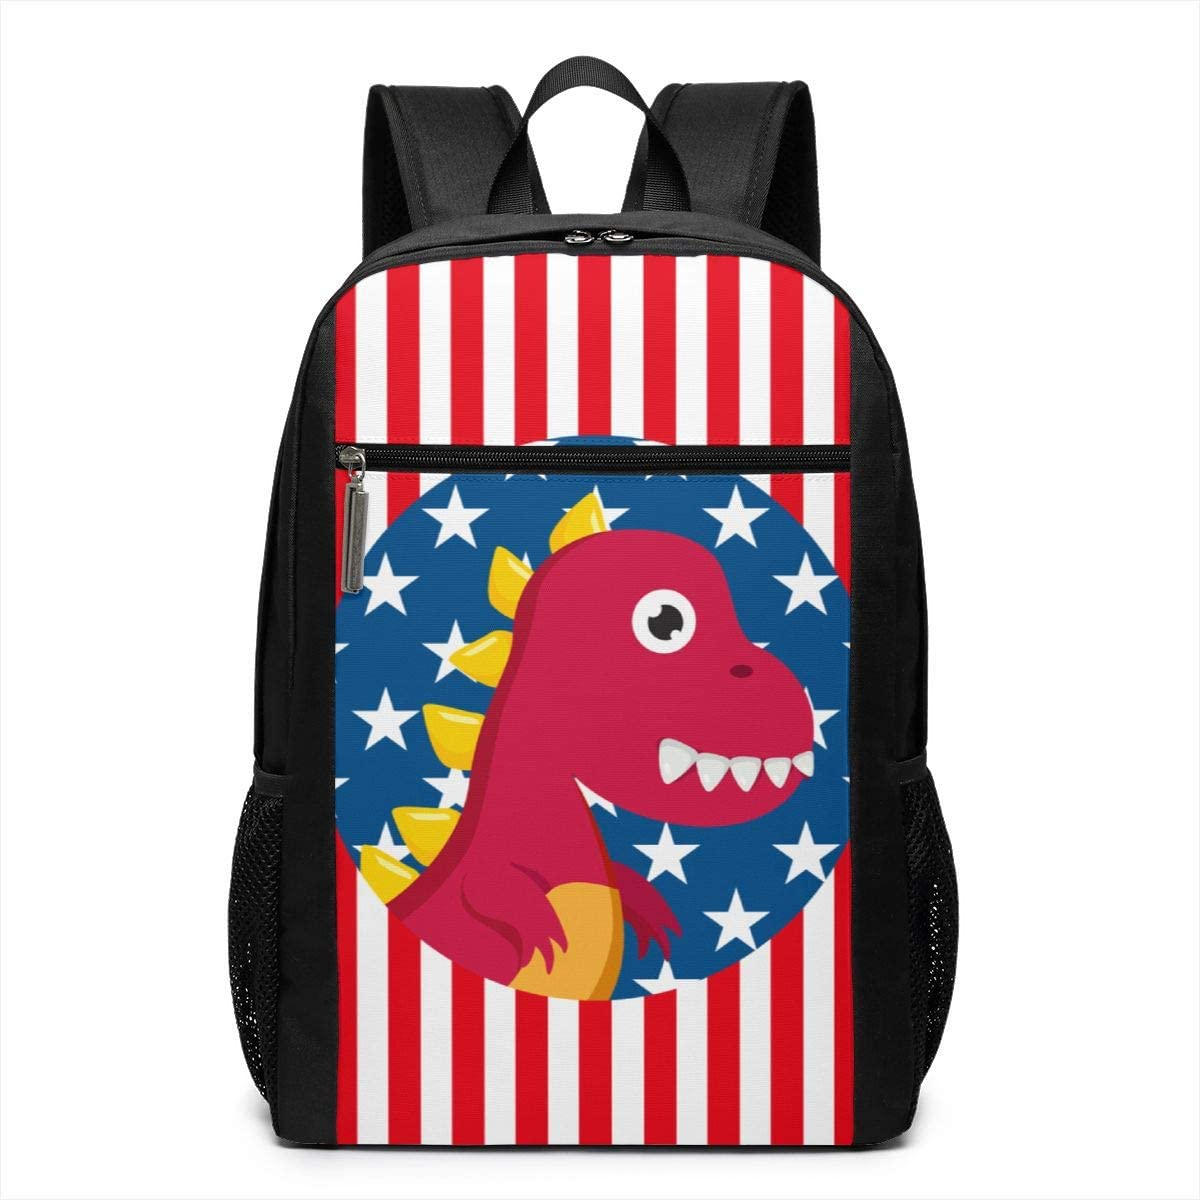 XTYND556 Dinosaurs Us Flag College Commuter Backpack Large Capacity Laptop Bag 17 Inch Travel Bag